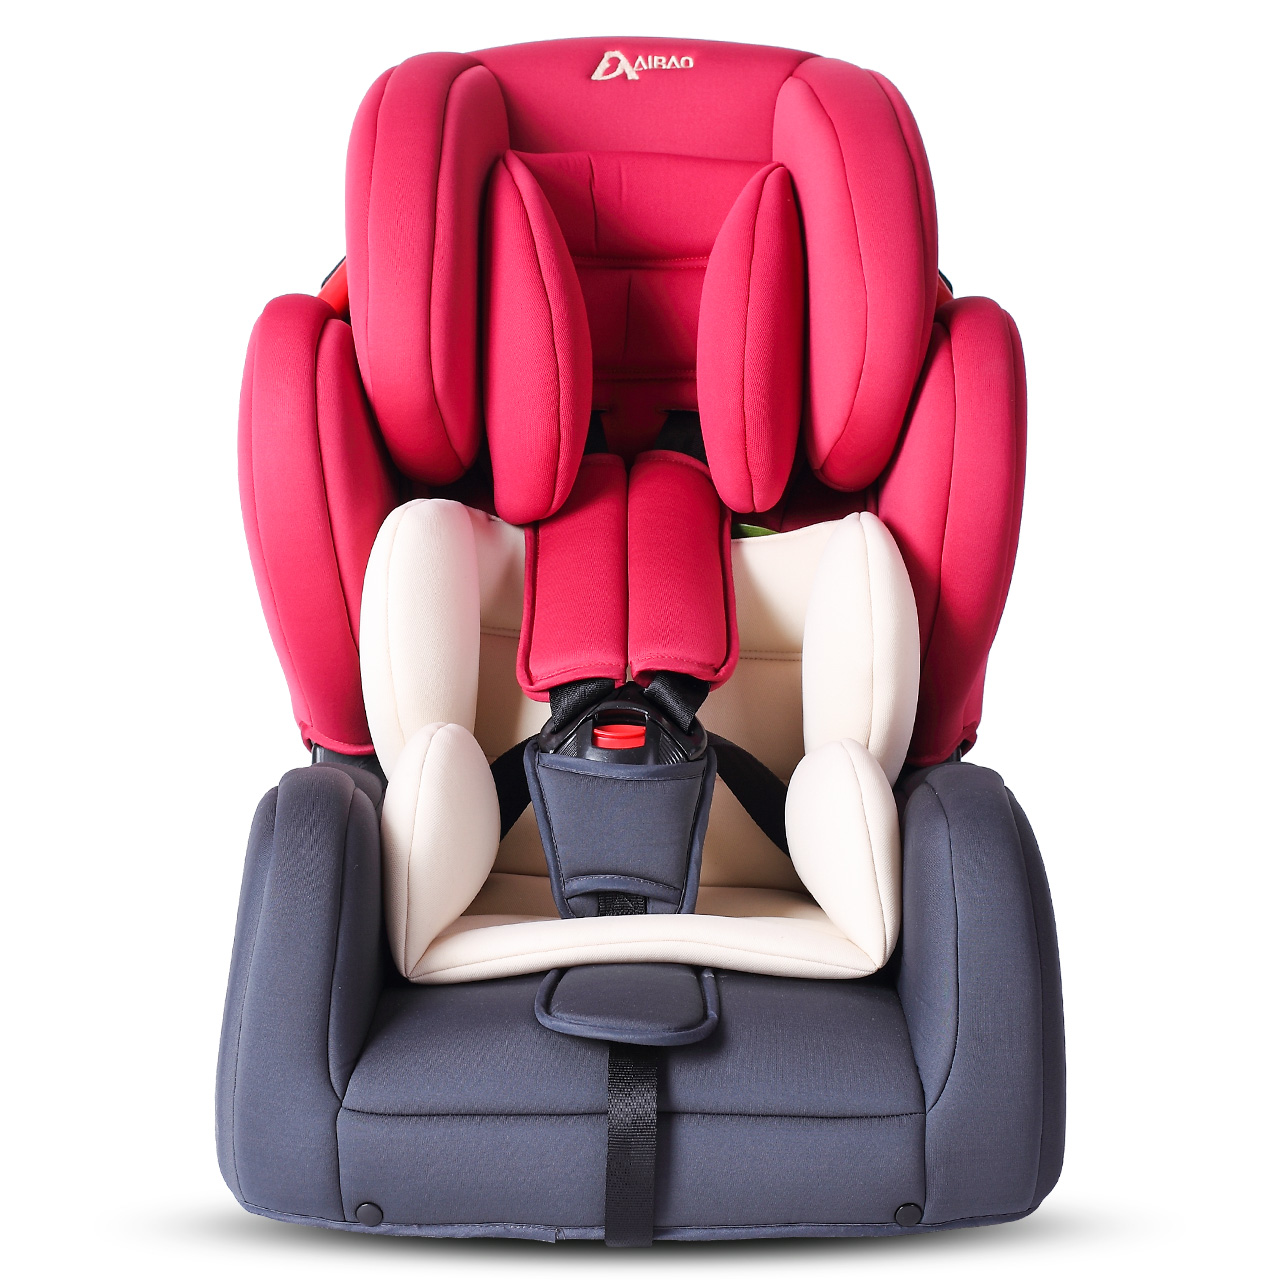 AIBAO Top Quality Child Safety Car Seat With ISOFIX, Baby Chair Used